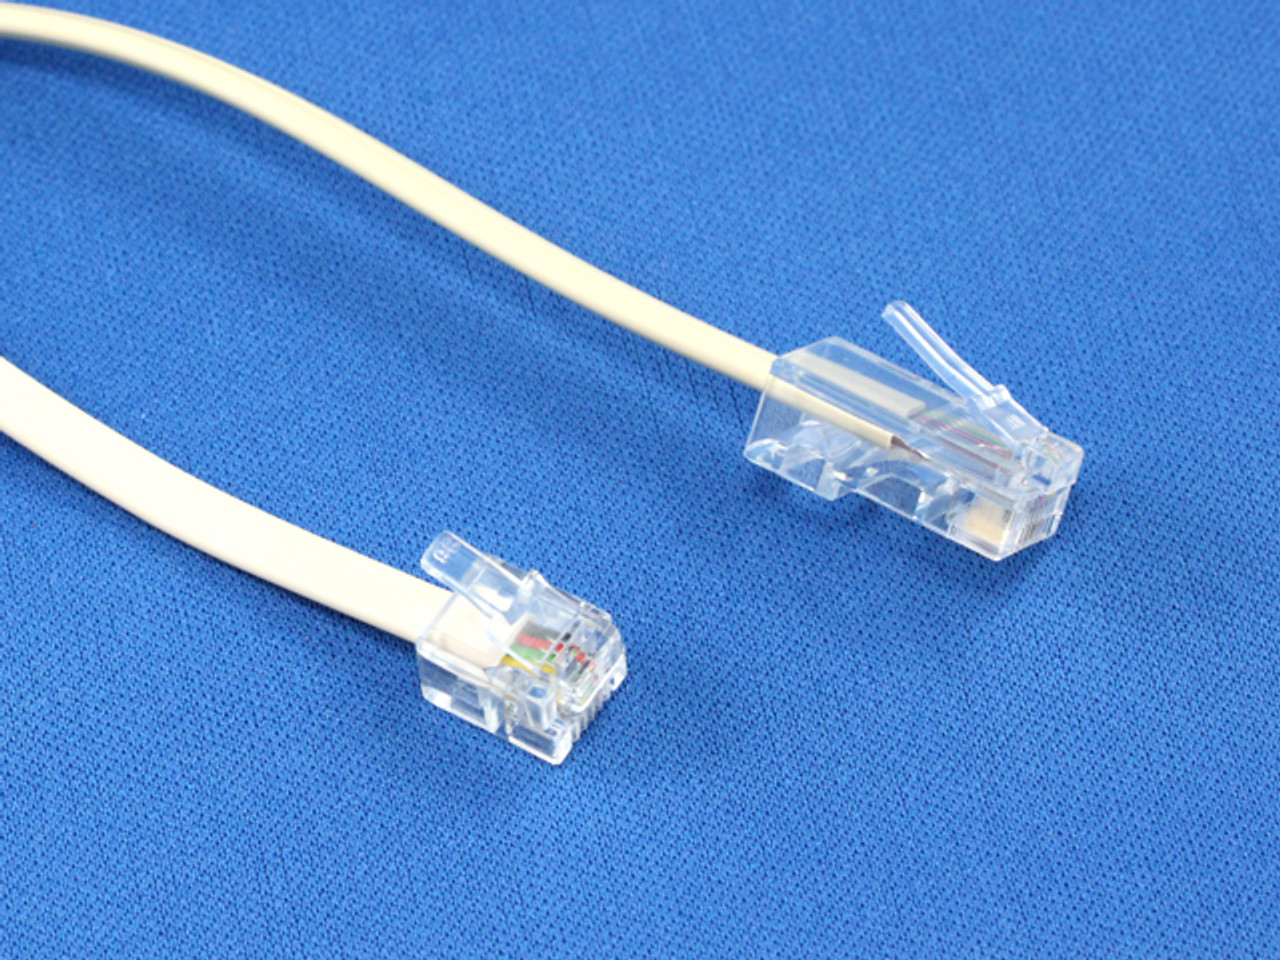 Product image for 3M RJ45/RJ12 Telephone Cable | CX Computer Superstore